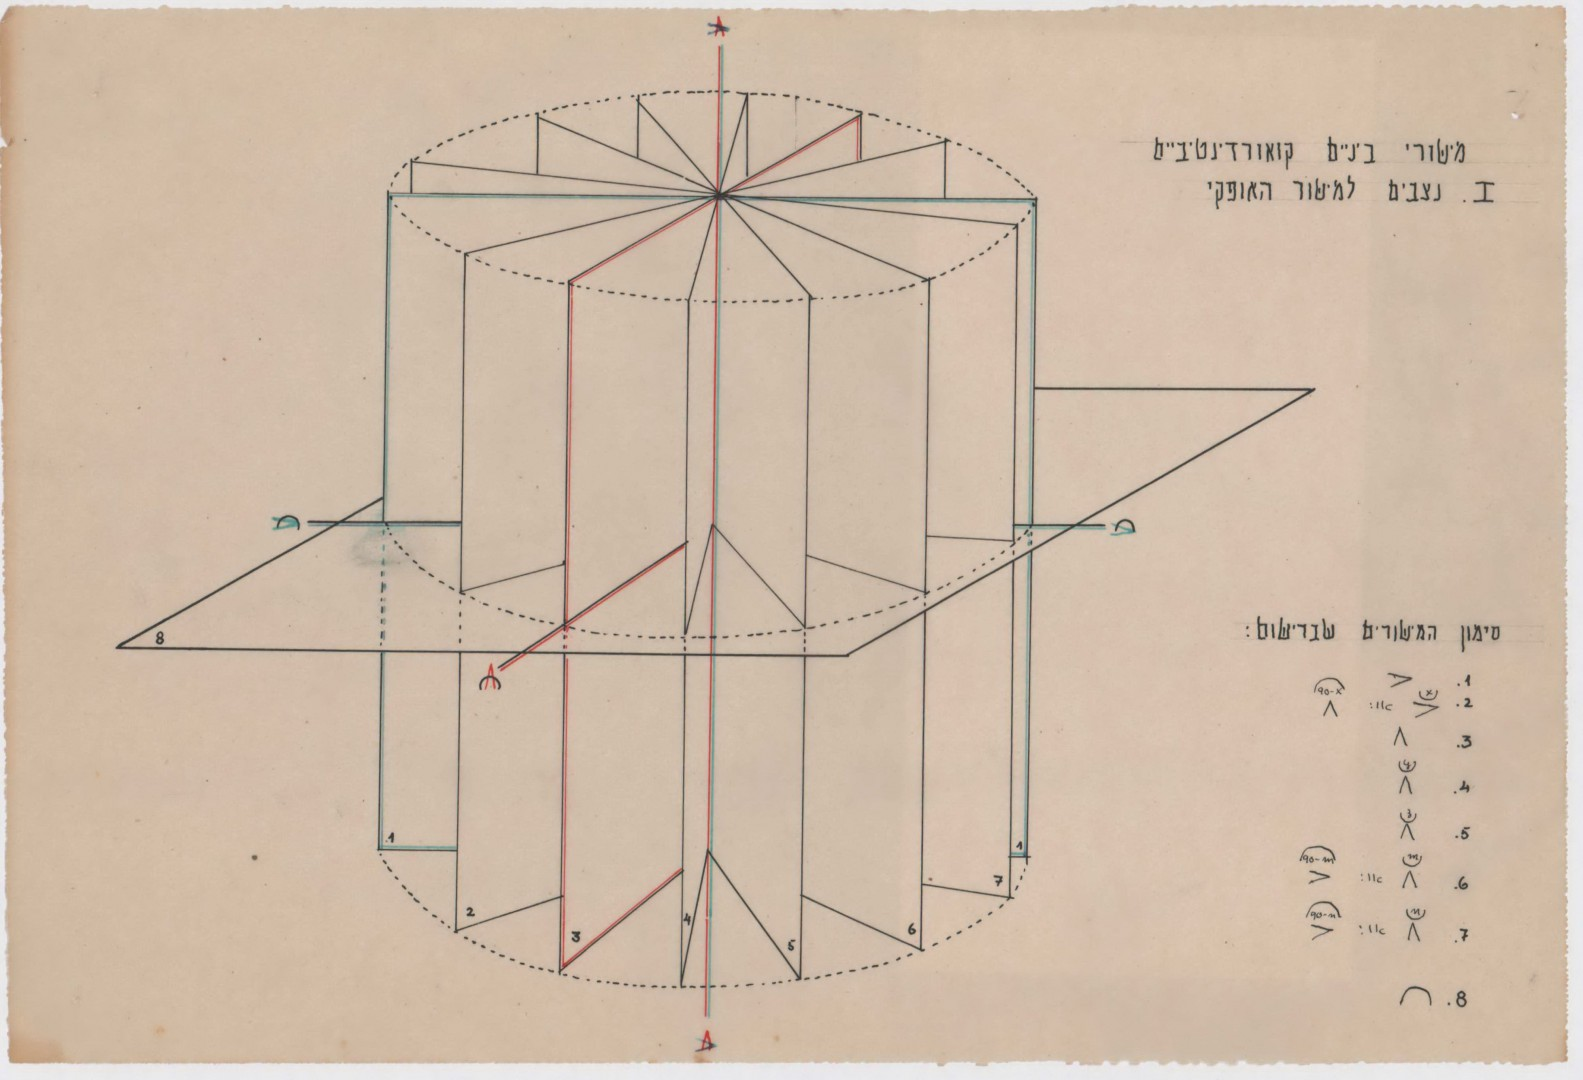 Eshkol-Wachman Movement Notation 1950s